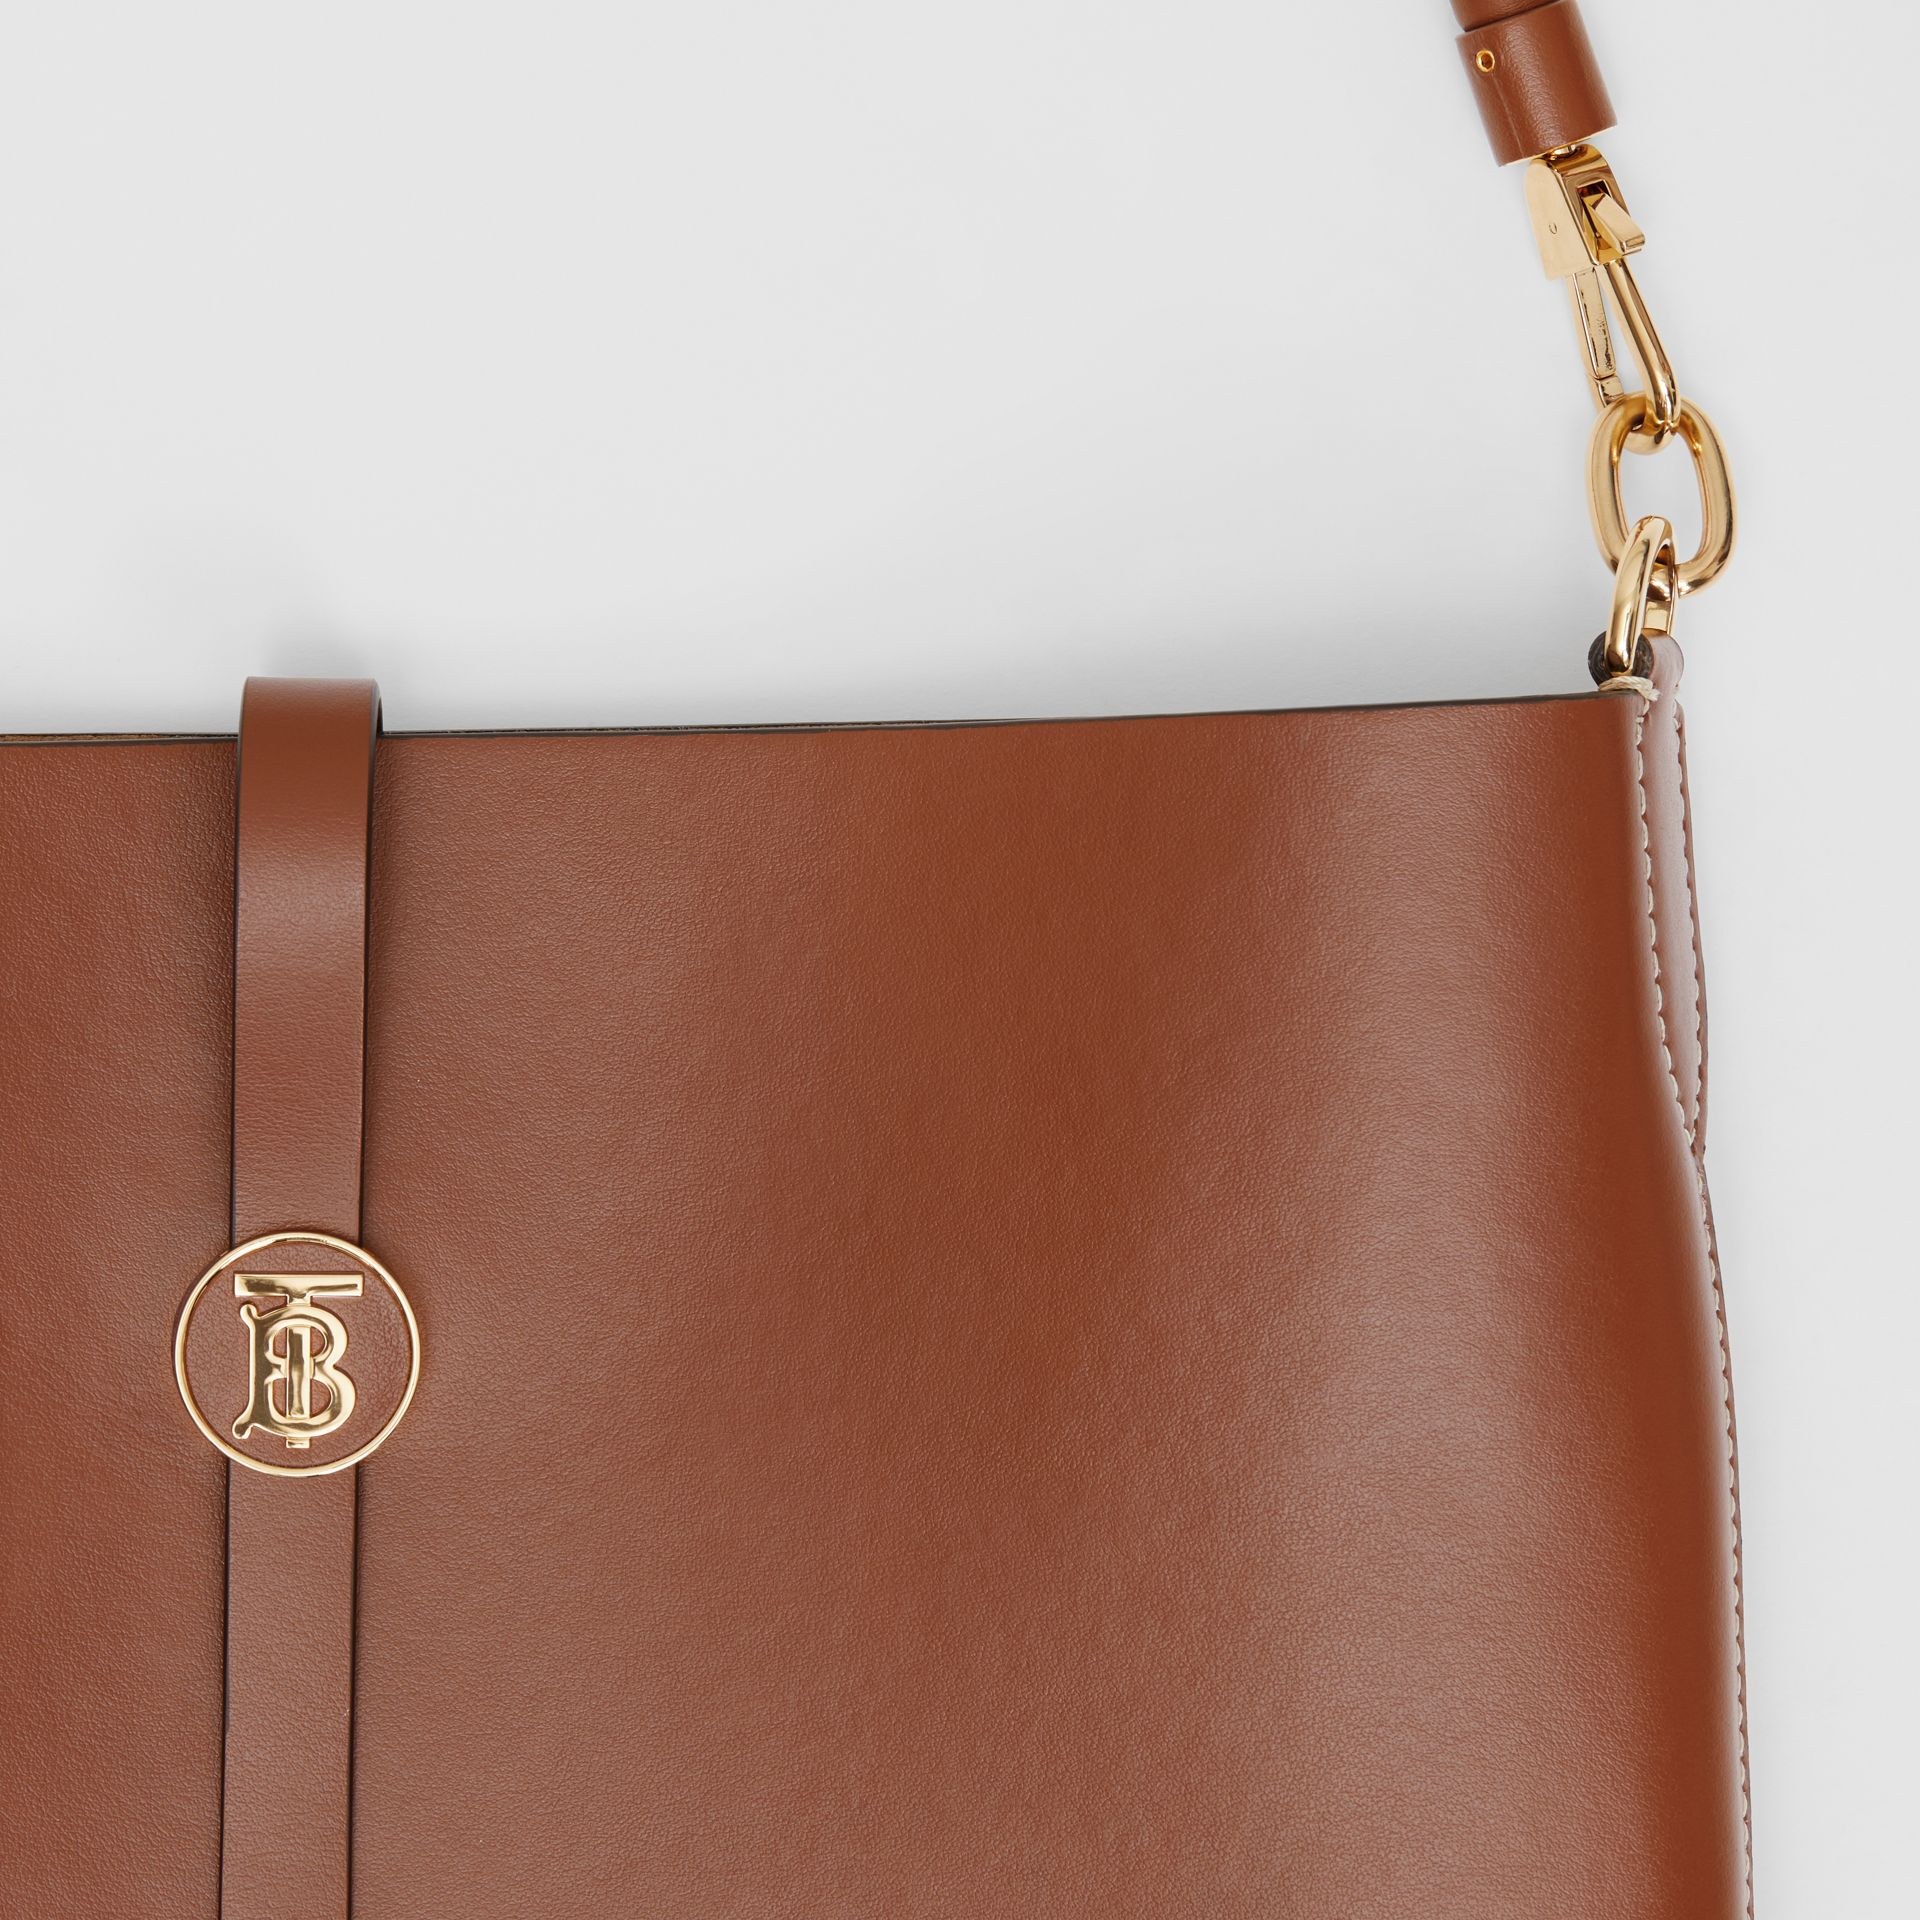 Leather Anne Bag in Tan - Women | Burberry United Kingdom - gallery image 1